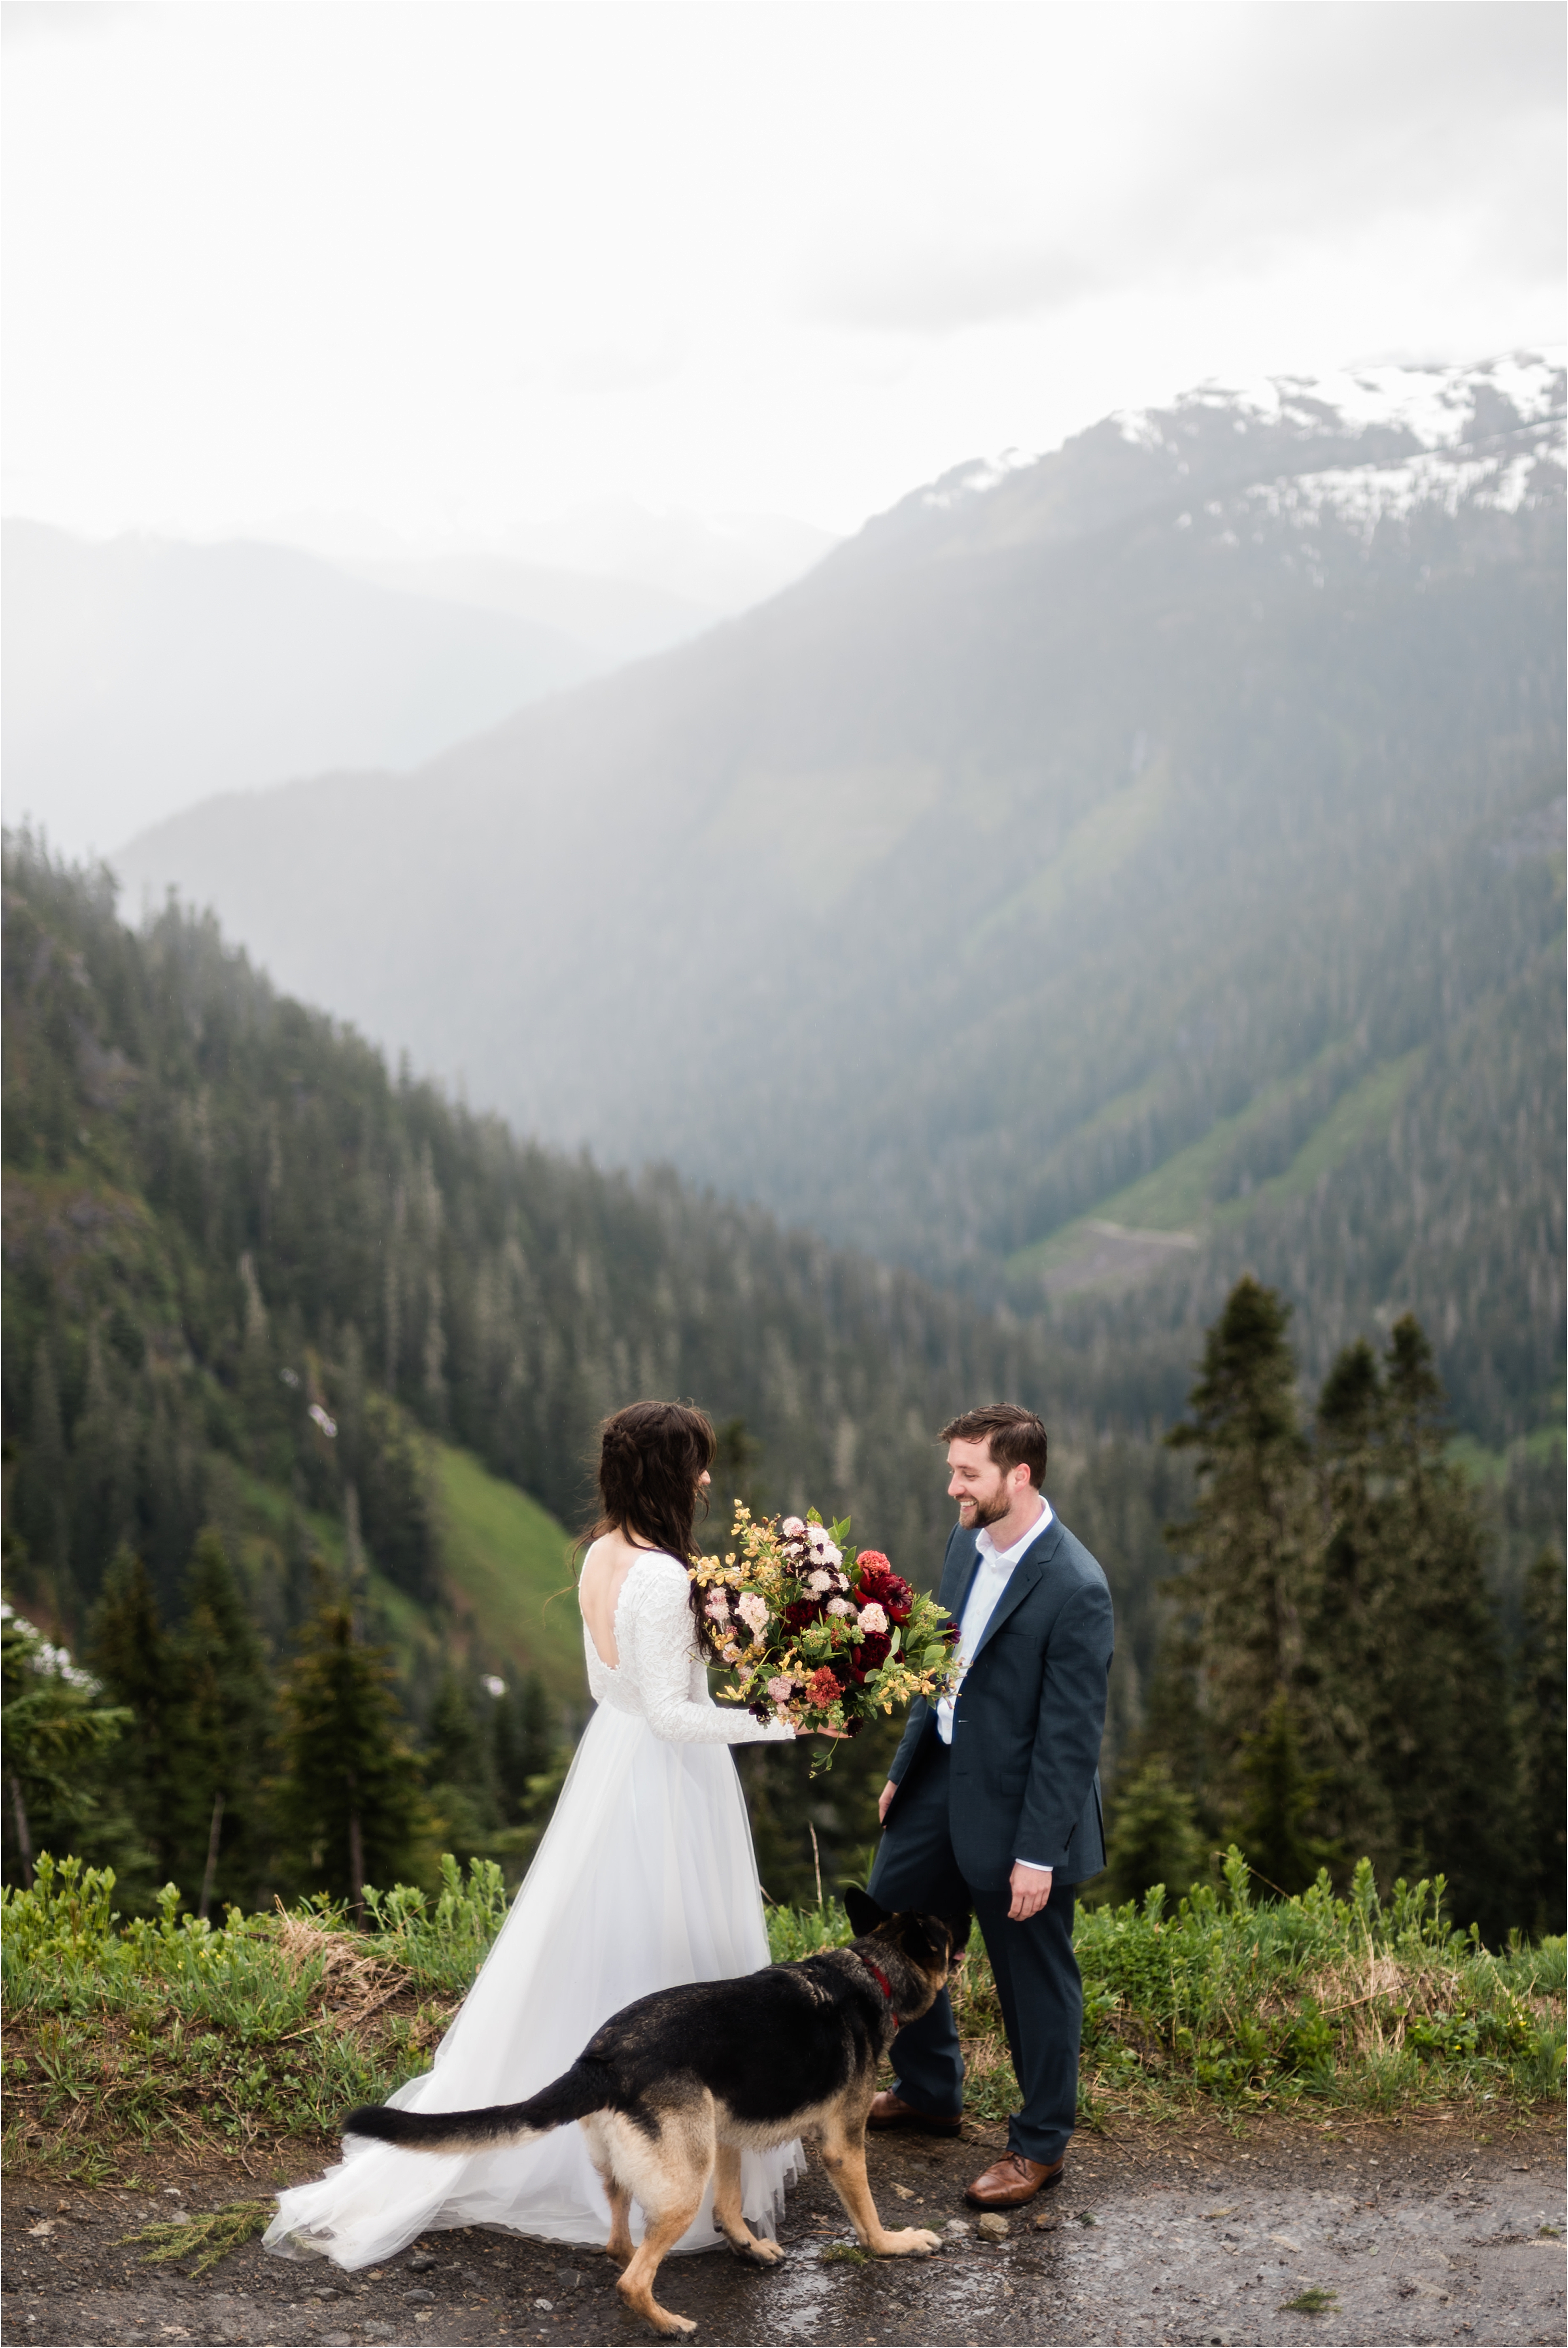 First look at Christina & Tanner's elopement on the slopes of Mt. Baker. Image by Forthright Photo, Seattle Elopement Photographers